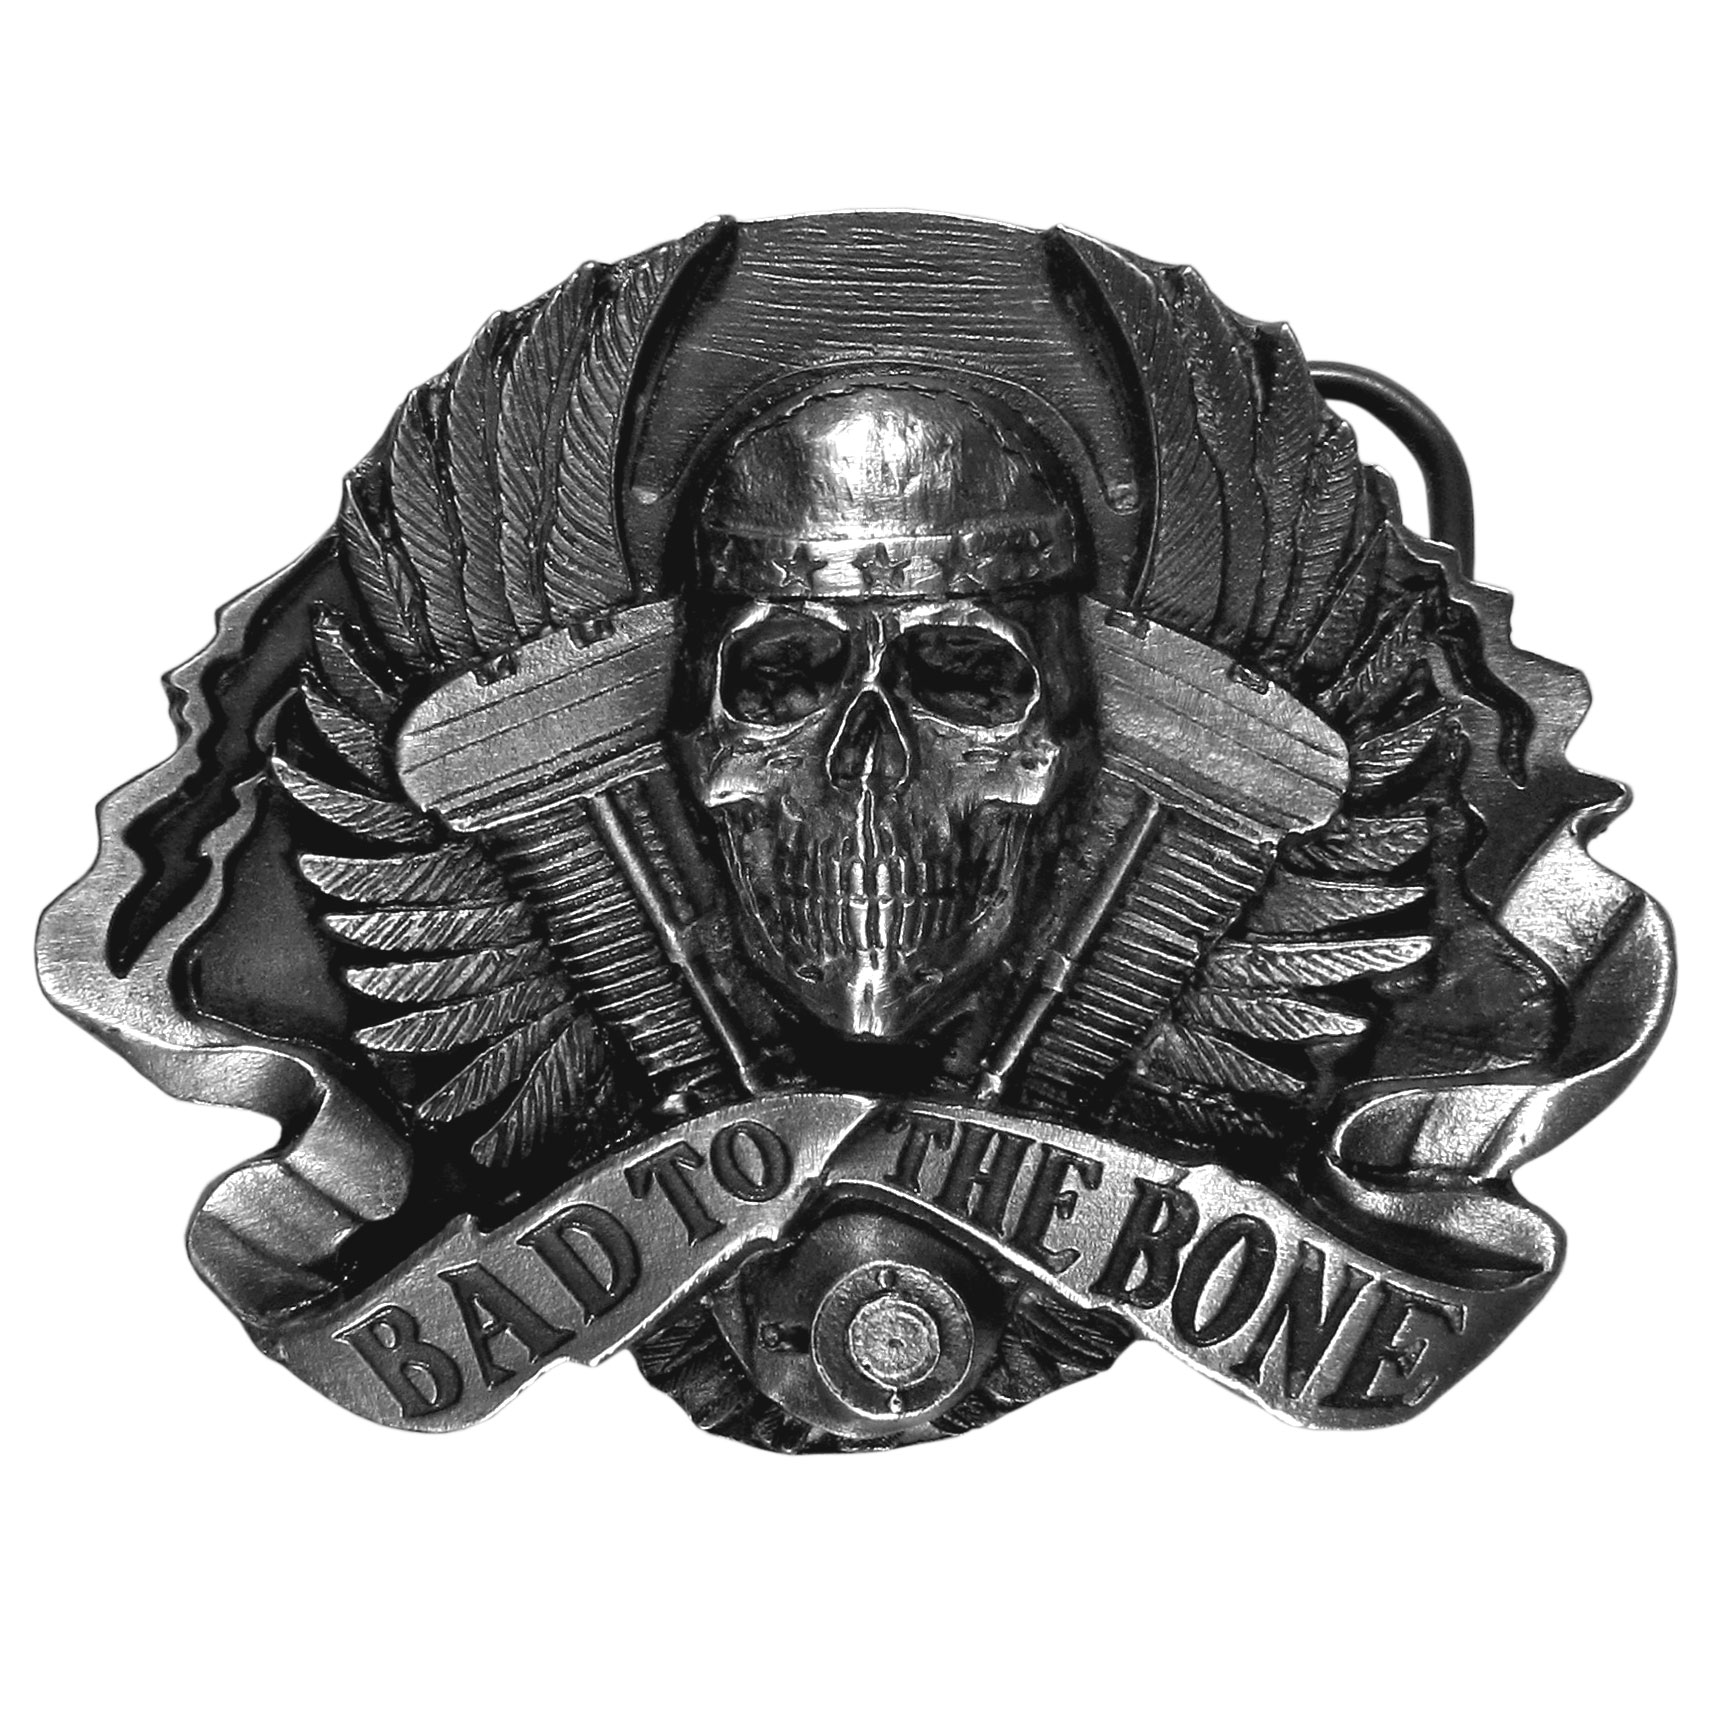 "Bad to the Bone Antiqued Belt Buckle - ""Bad to the bone!  This buckle says it all.  It has a skull in the center with wings surrounding it and a banner with """"Bad To The Bone"""" underneath.  This antiqued, carved buckle is made of fully cast metal with a standard bale that fits up to 2"""" belts."""